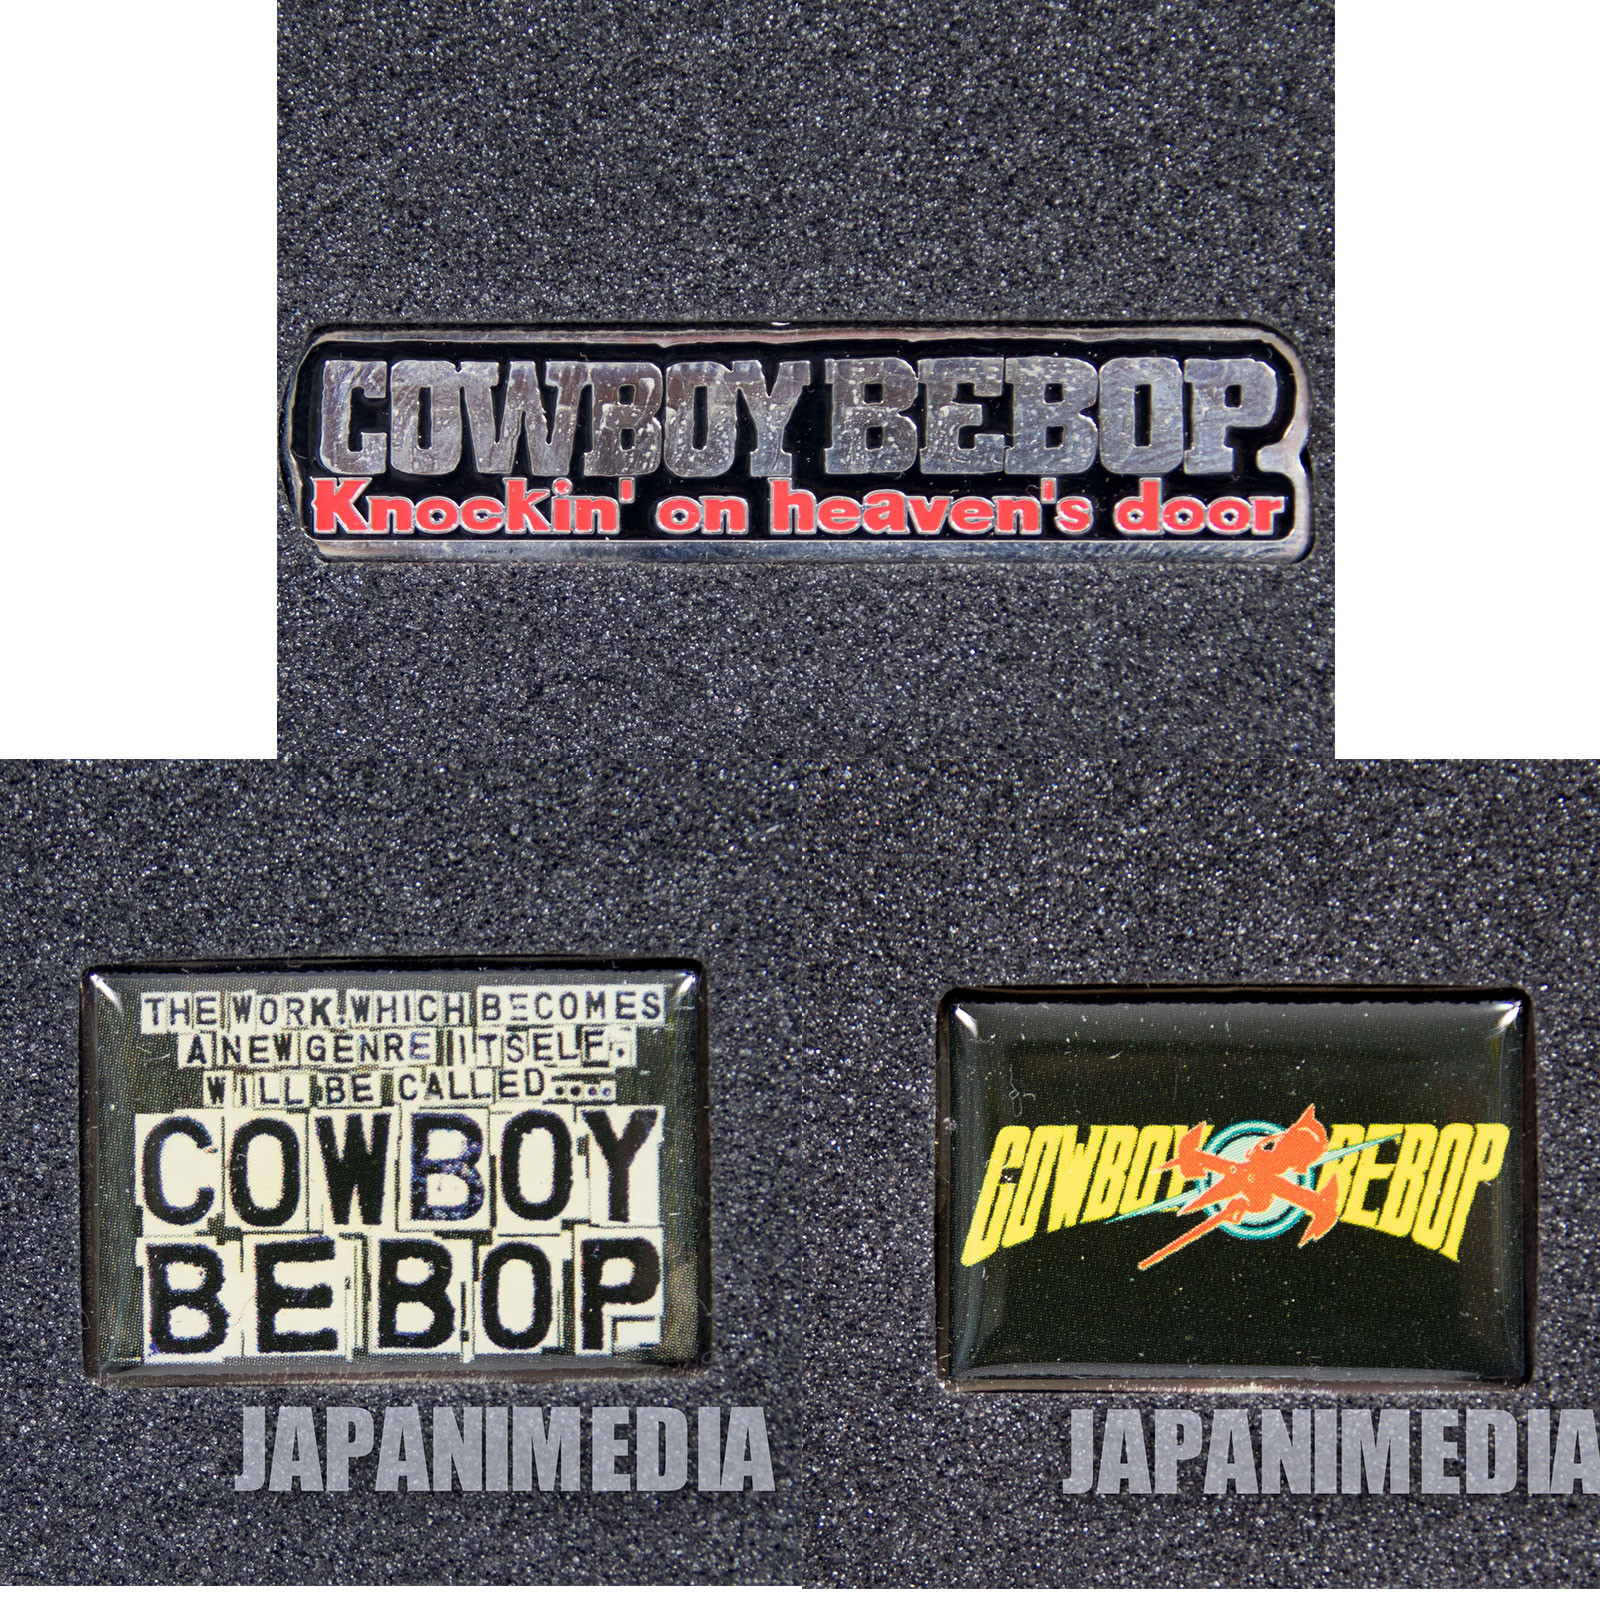 RARE Cowboy Bebop Knockin' on Heaven's Door Pins 3pc Set JAPAN ANIME